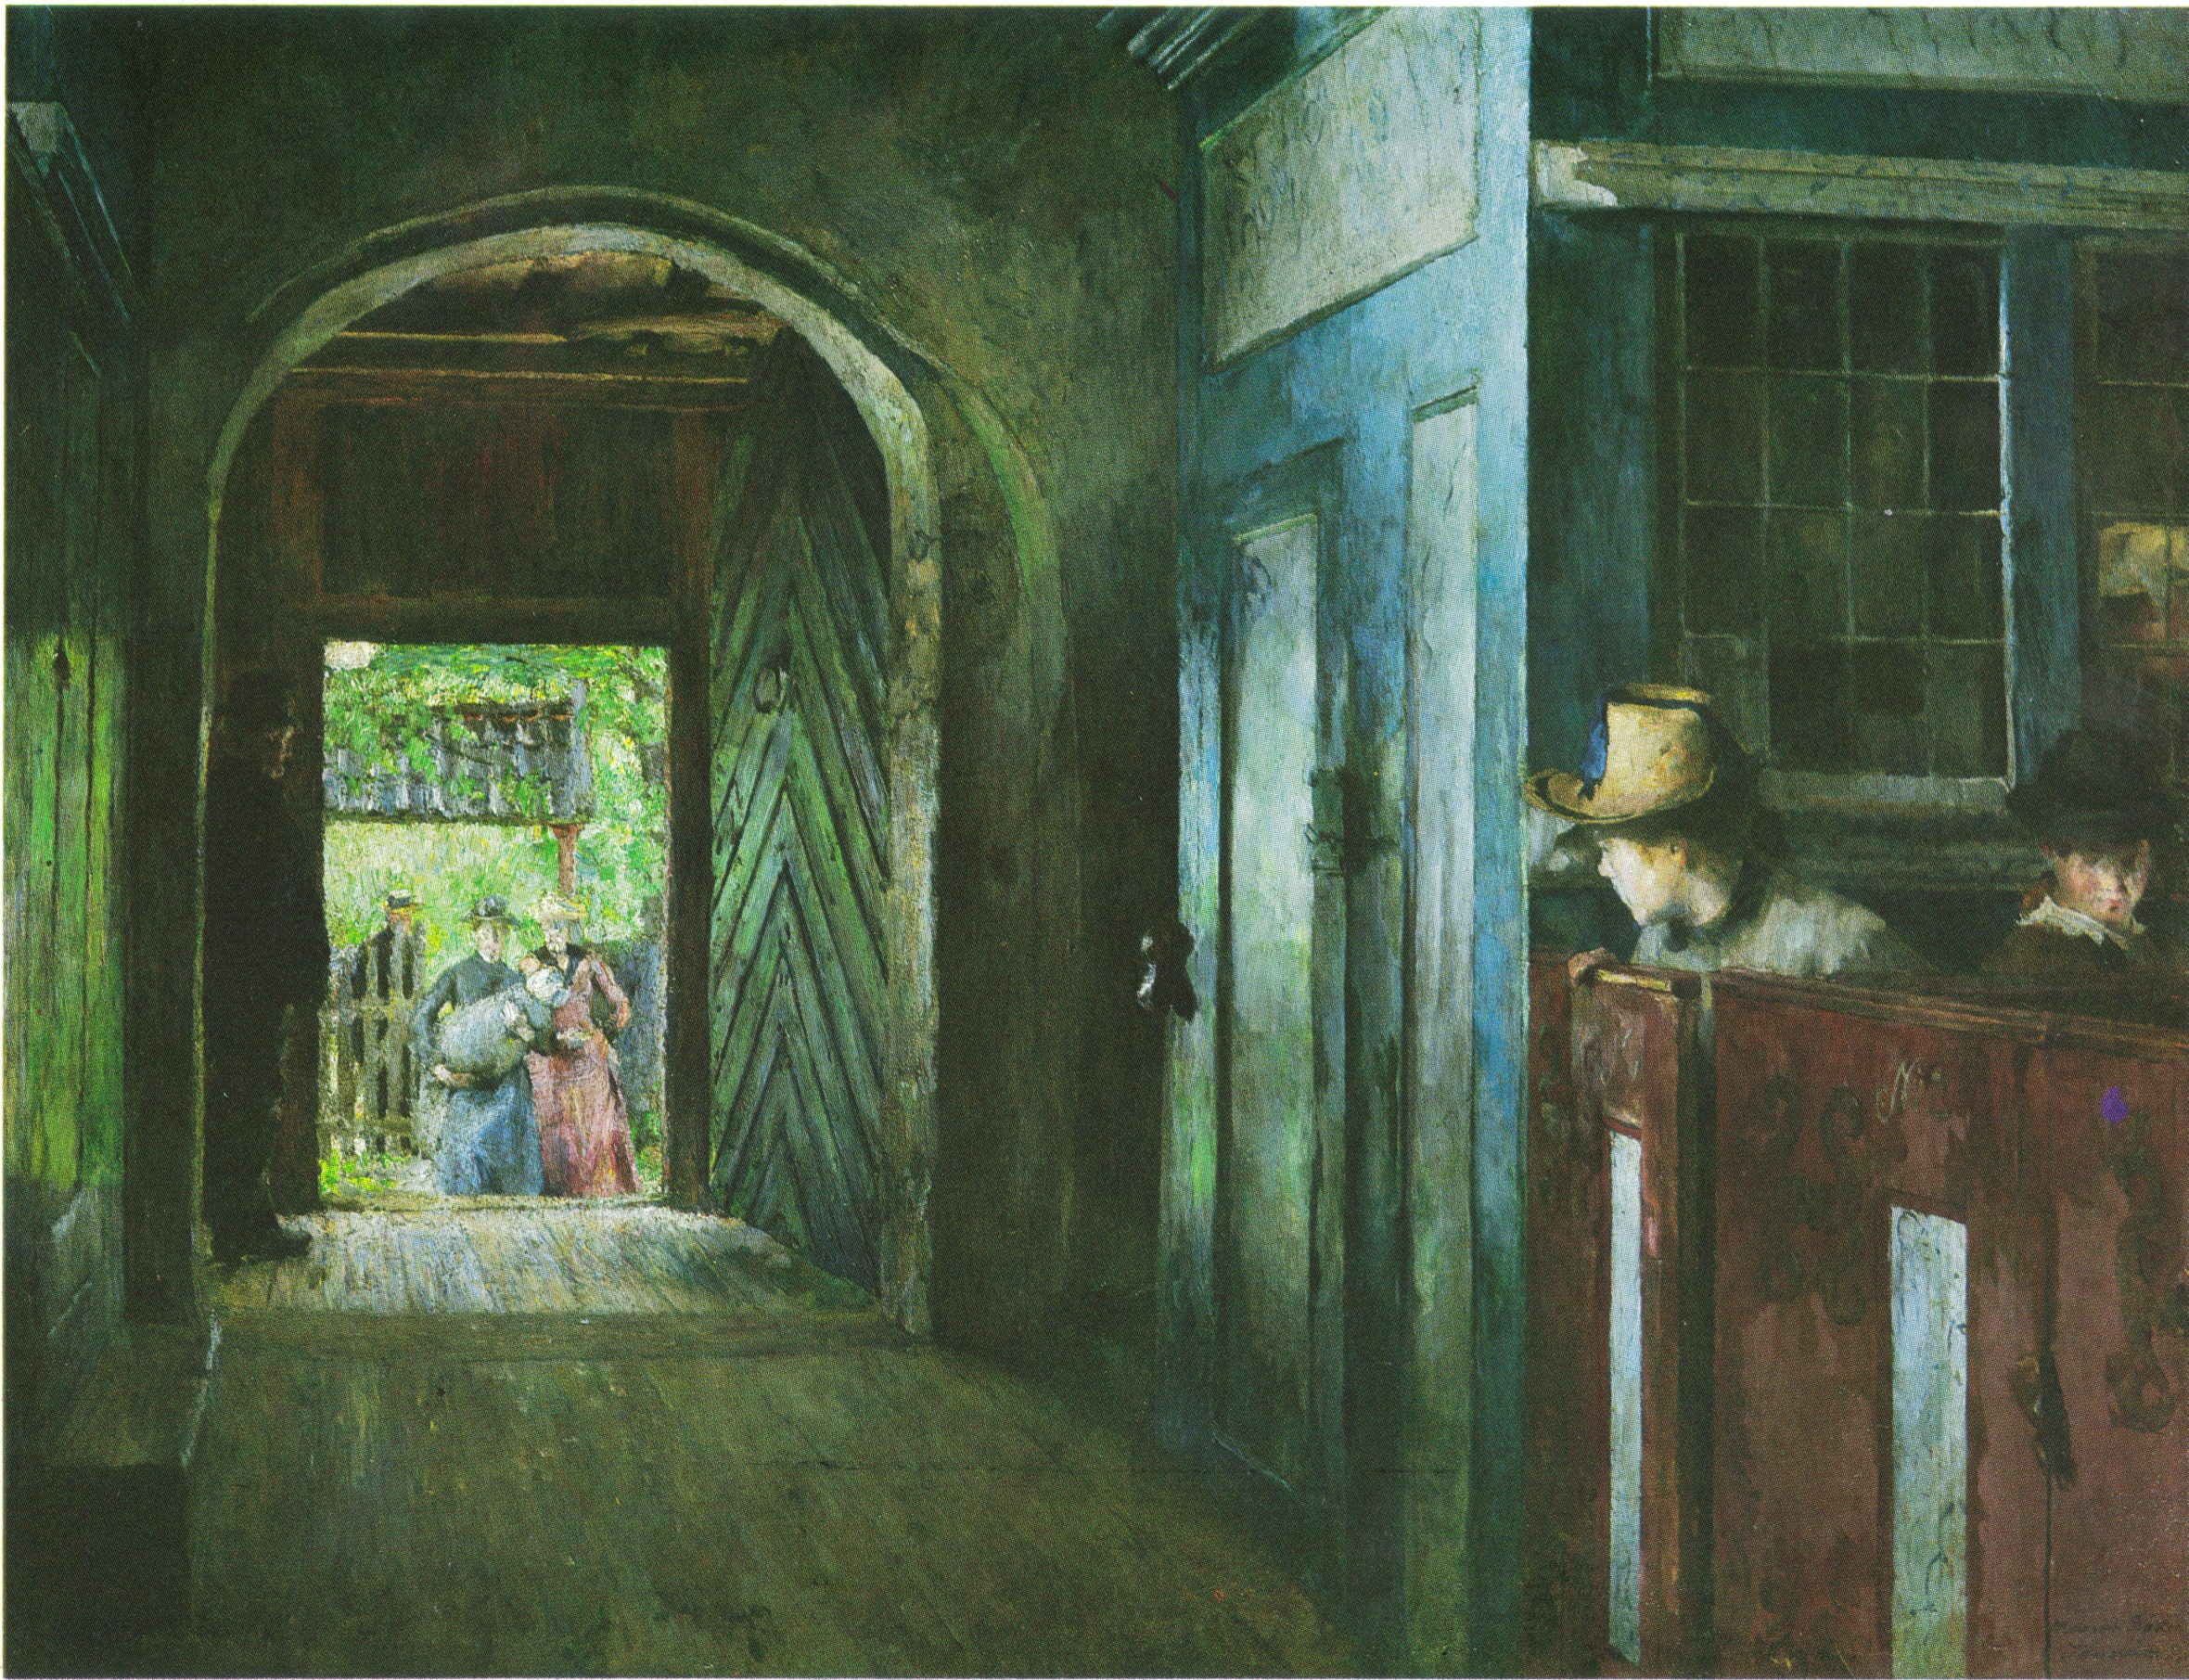 Barnedåp i Tanum kirke, by Harriet Backer, 1892